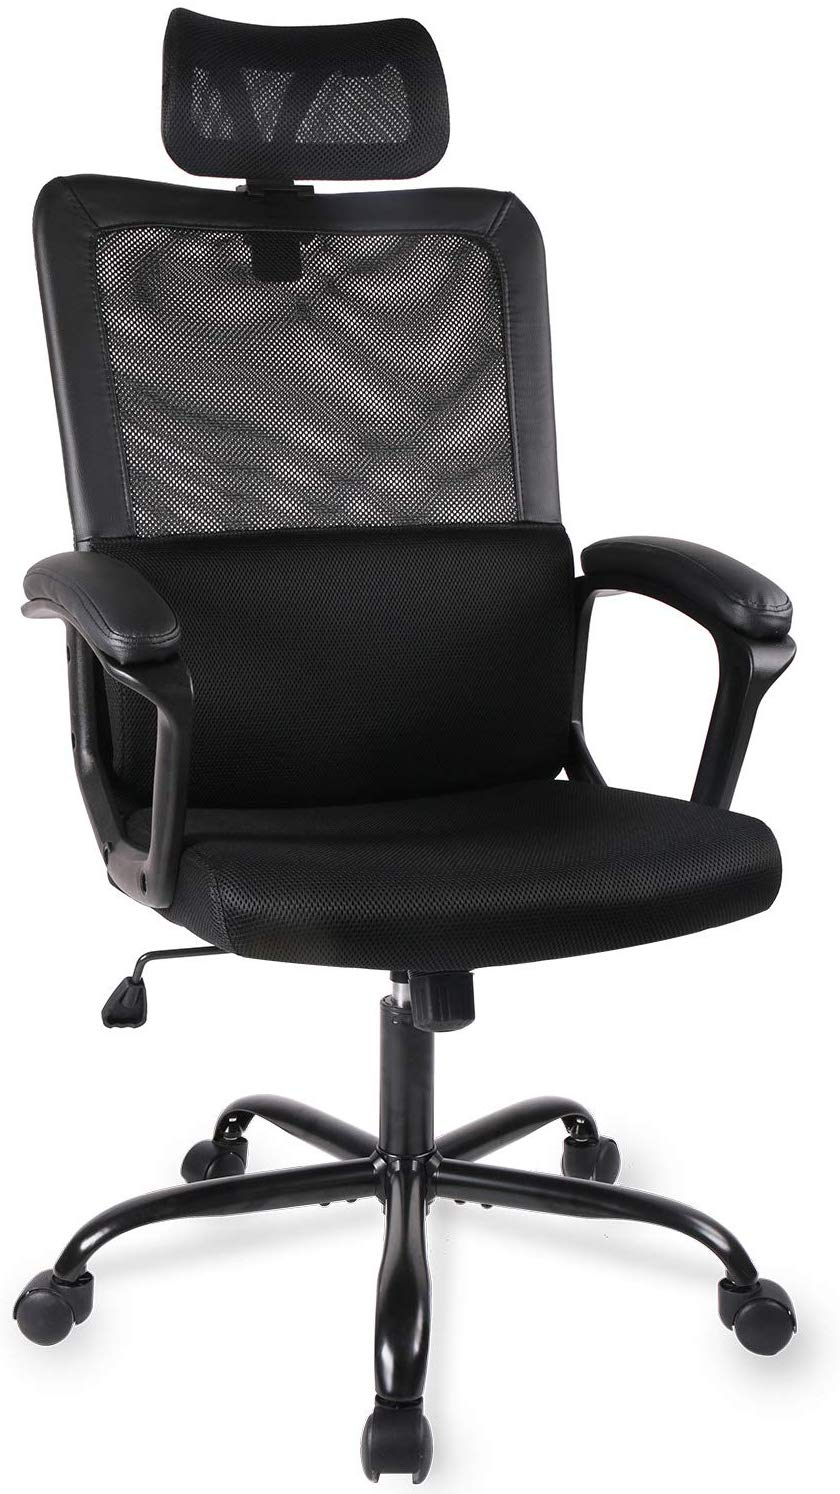 Duramount Ergonomic Adjustable Office Chair with Lumbar Support and Rollerblade Wheels- High Back with Breathable Mesh-Thick Seat Cushion